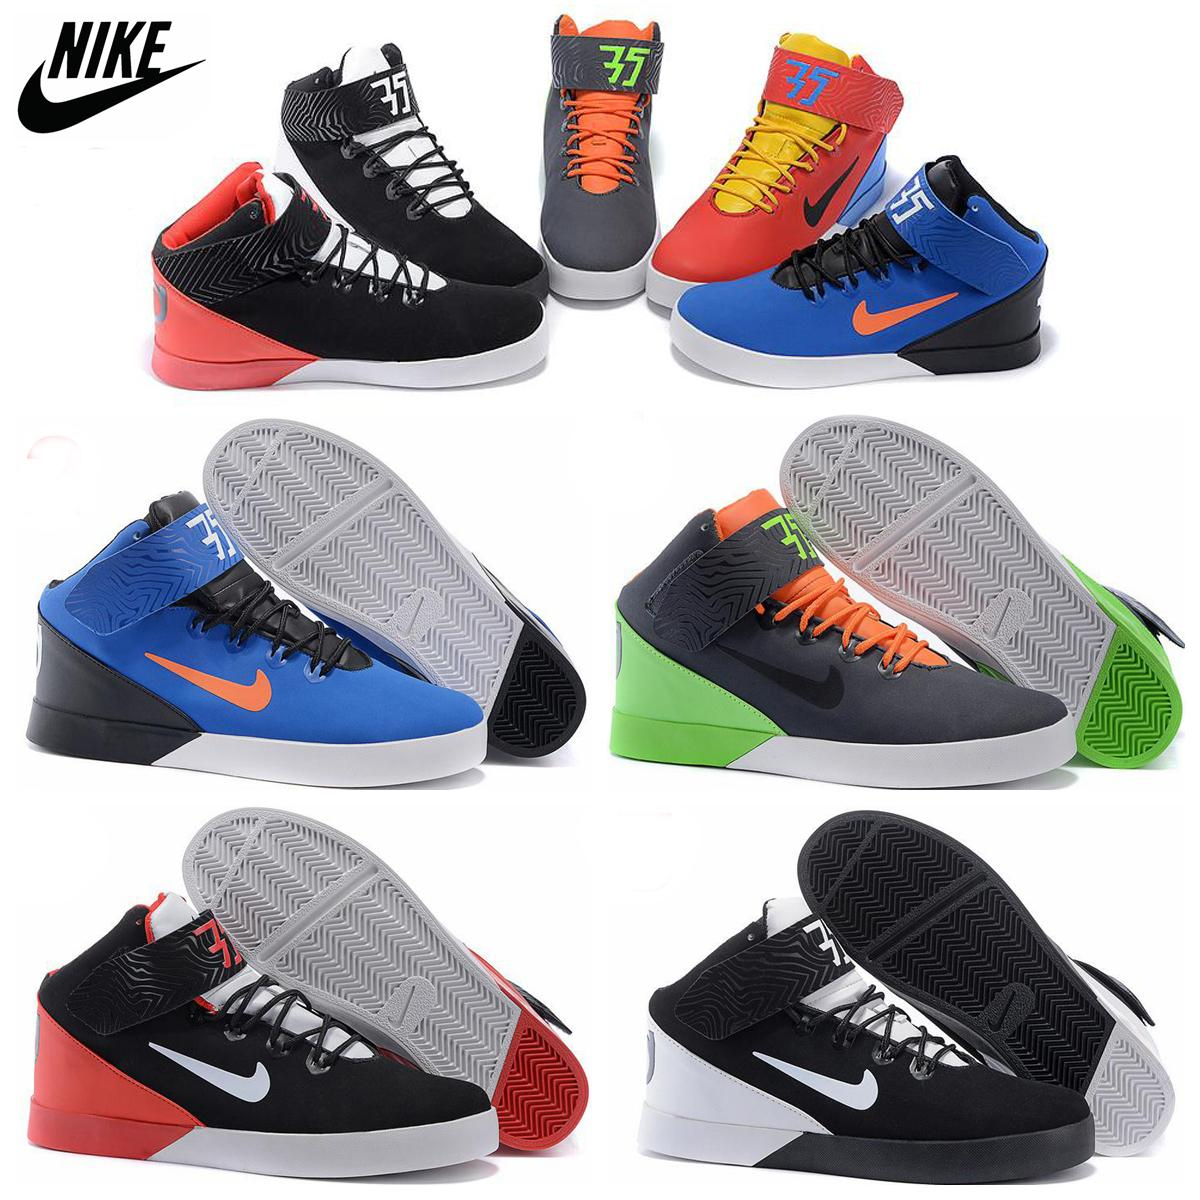 nike kd vulc casual shoes mens basketball shoes high cut